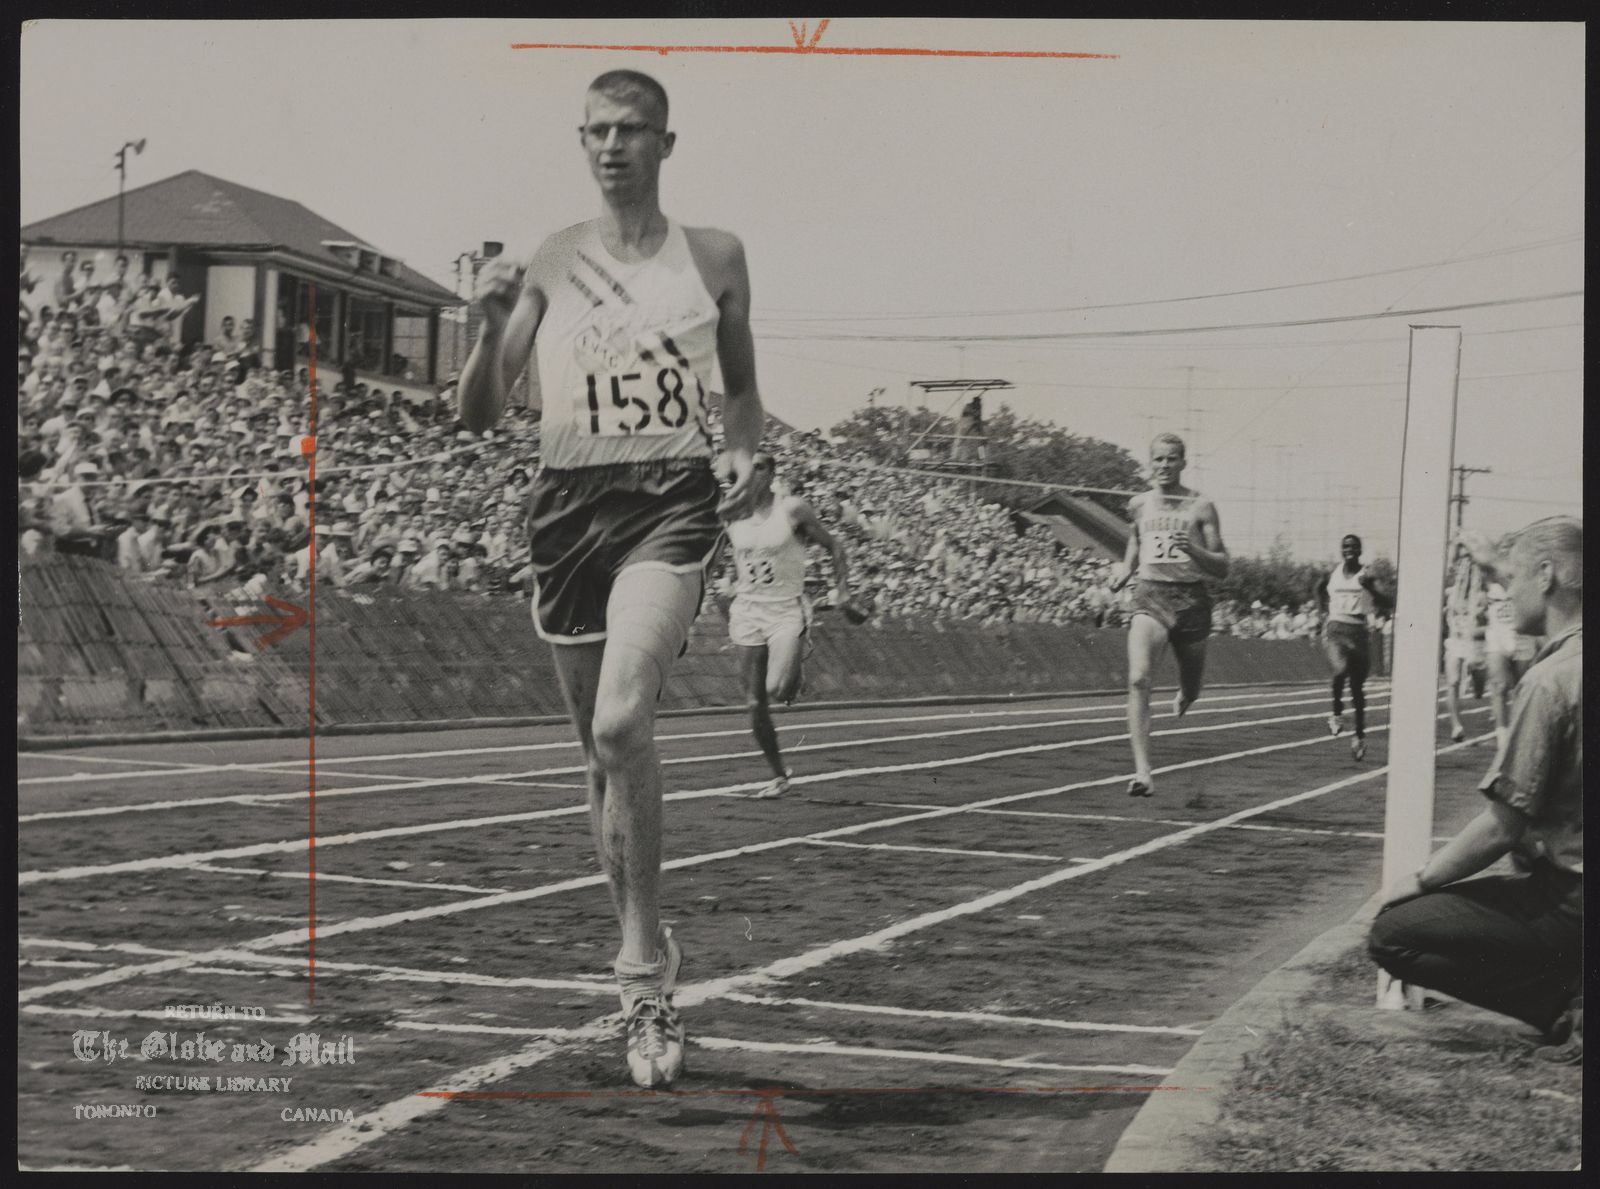 The notes transcribed from the back of this photograph are as follows: Bill CROTHERS Sprinter Bill Crothers of East York hits finish line in record time for 800-yard run. Crothers clocked 1:49.0, 0.6 seconds better than record held by Ergas Leps of Toronto. Leps was sixth yesterday. Trailing Crothers are Siq Ohleman (32) and Don Bertaio (33) both from Vancouver.